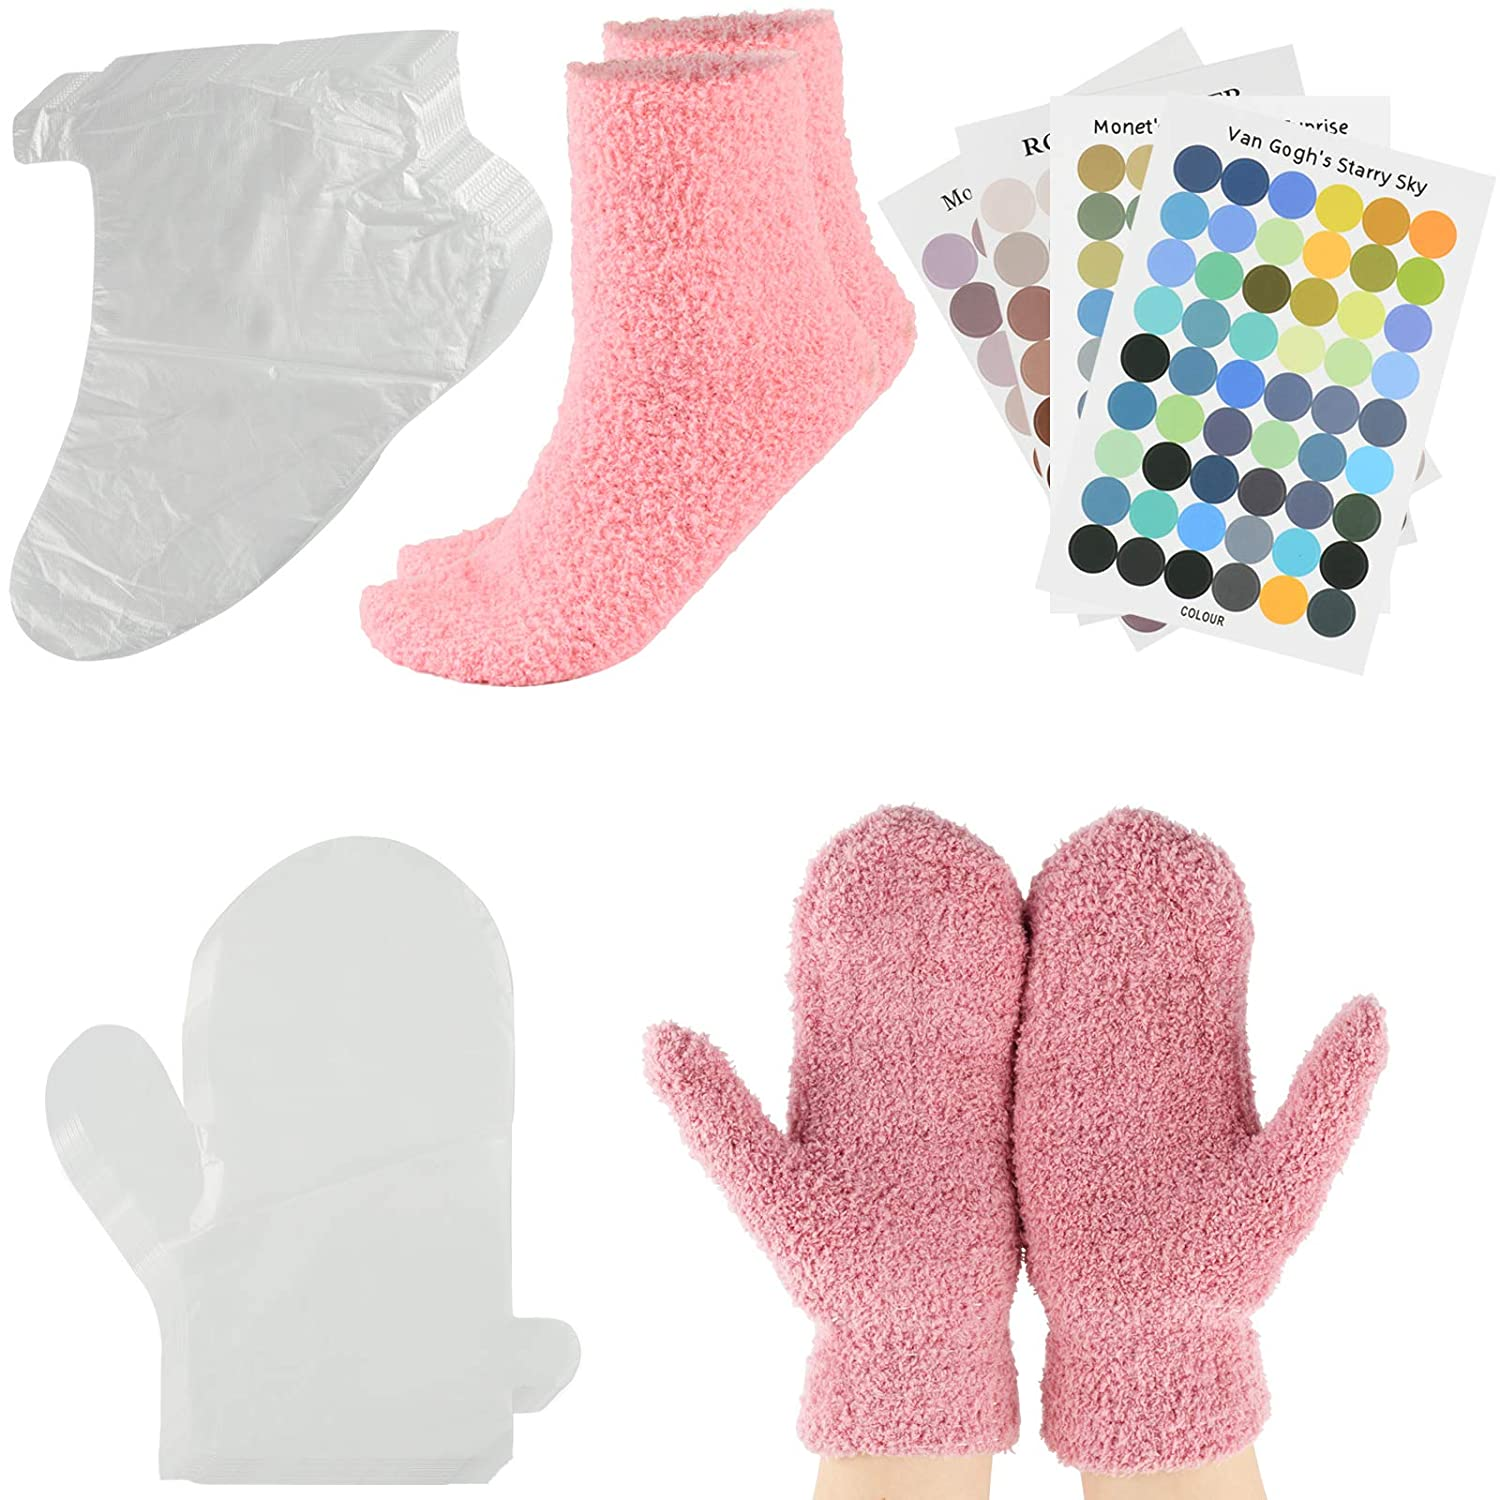 200pcs Paraffin Wax Bath Liners Mittens and Booti All stores are sold trend rank bath